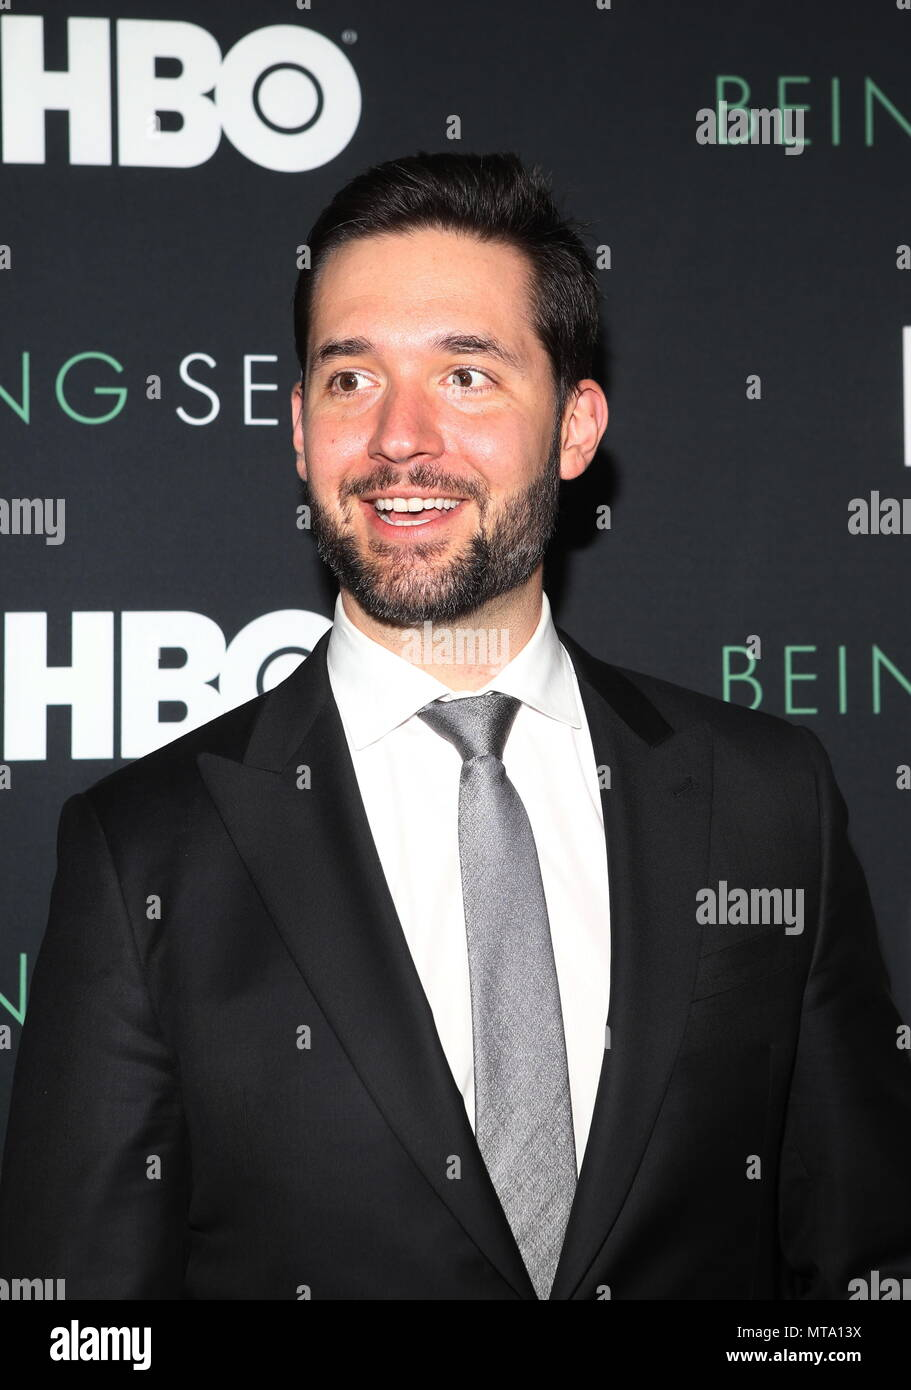 Co Founder Of Reddit Stock Photos & Co Founder Of Reddit